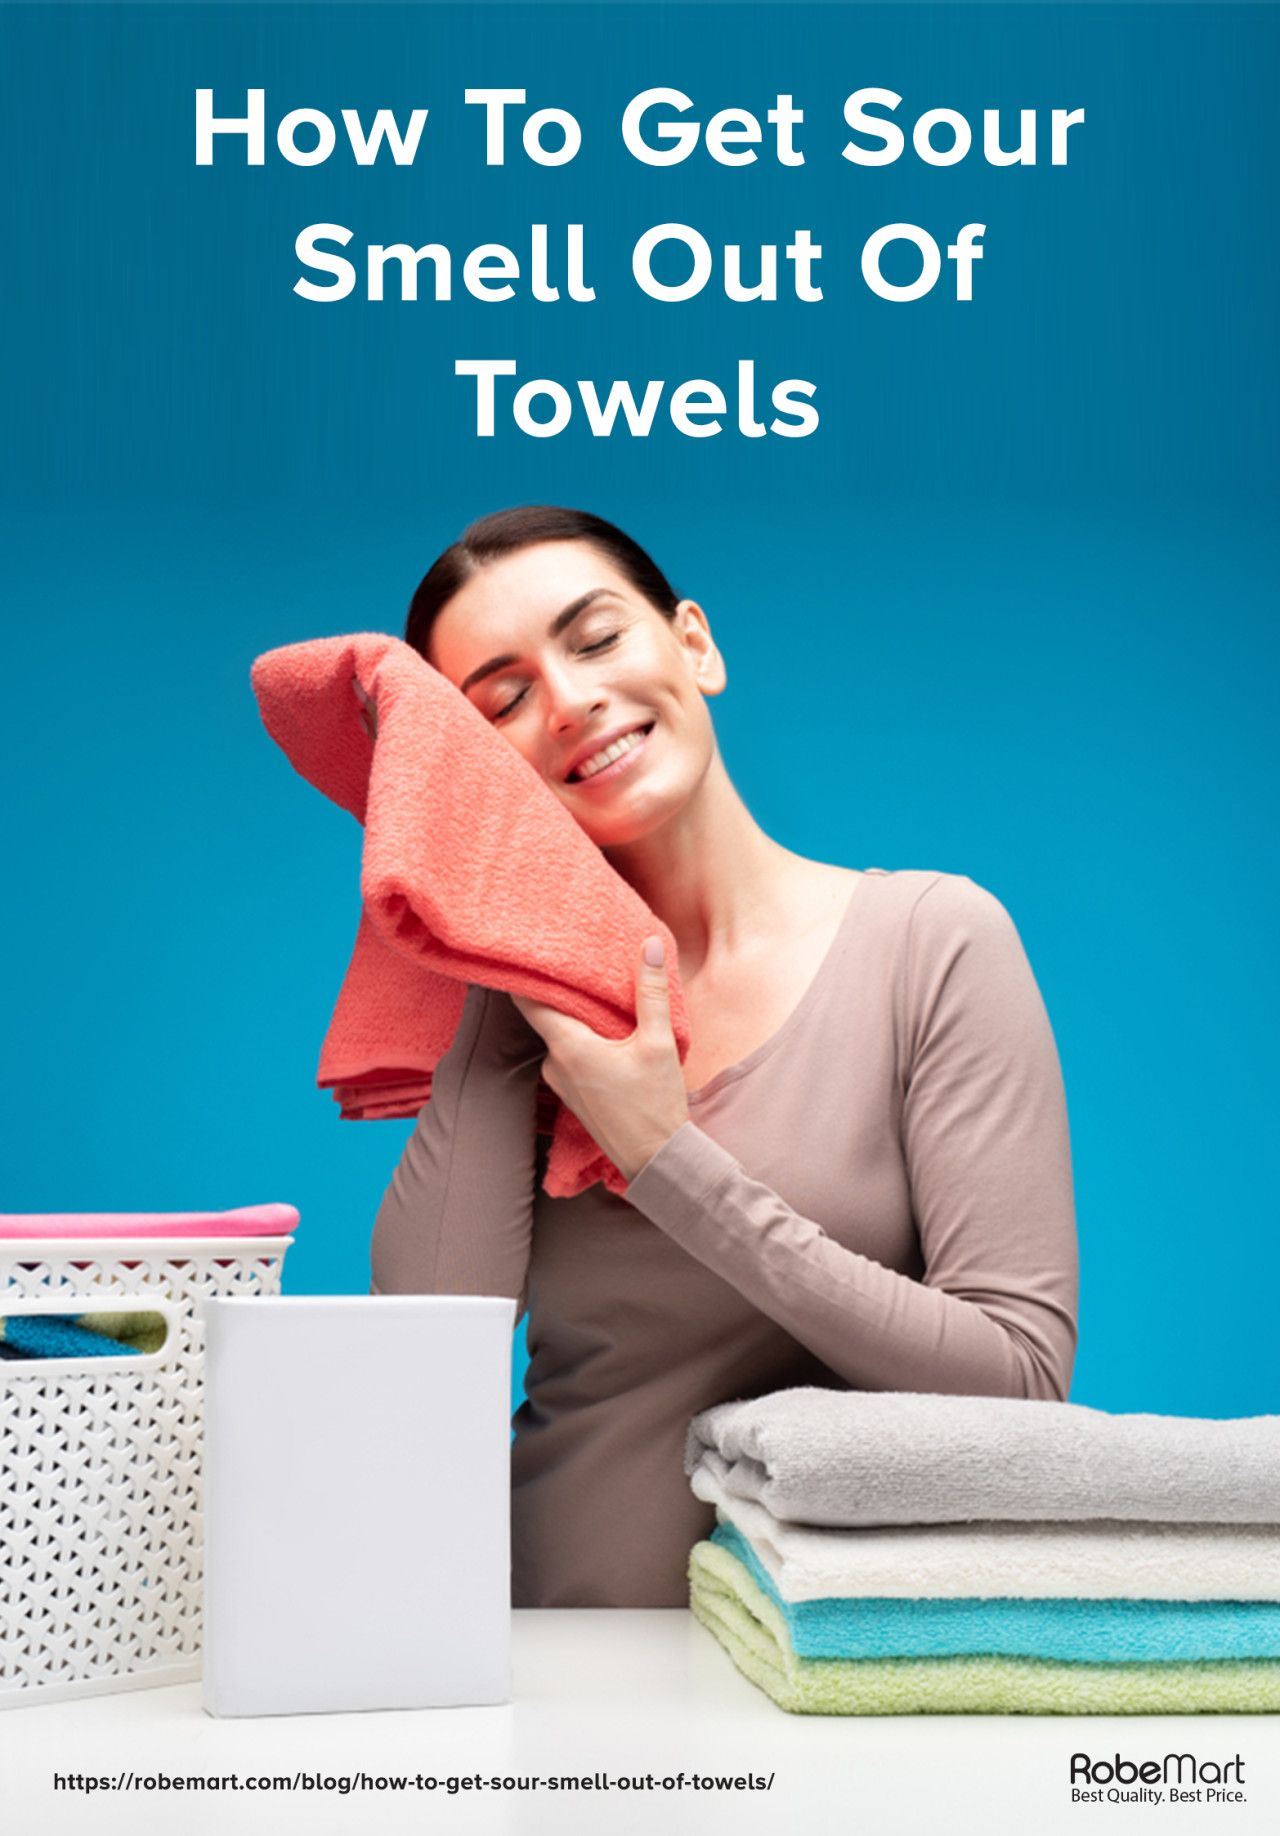 How To Get Sour Smell Out Of Towels Towels Smell Smelly Towels Towel